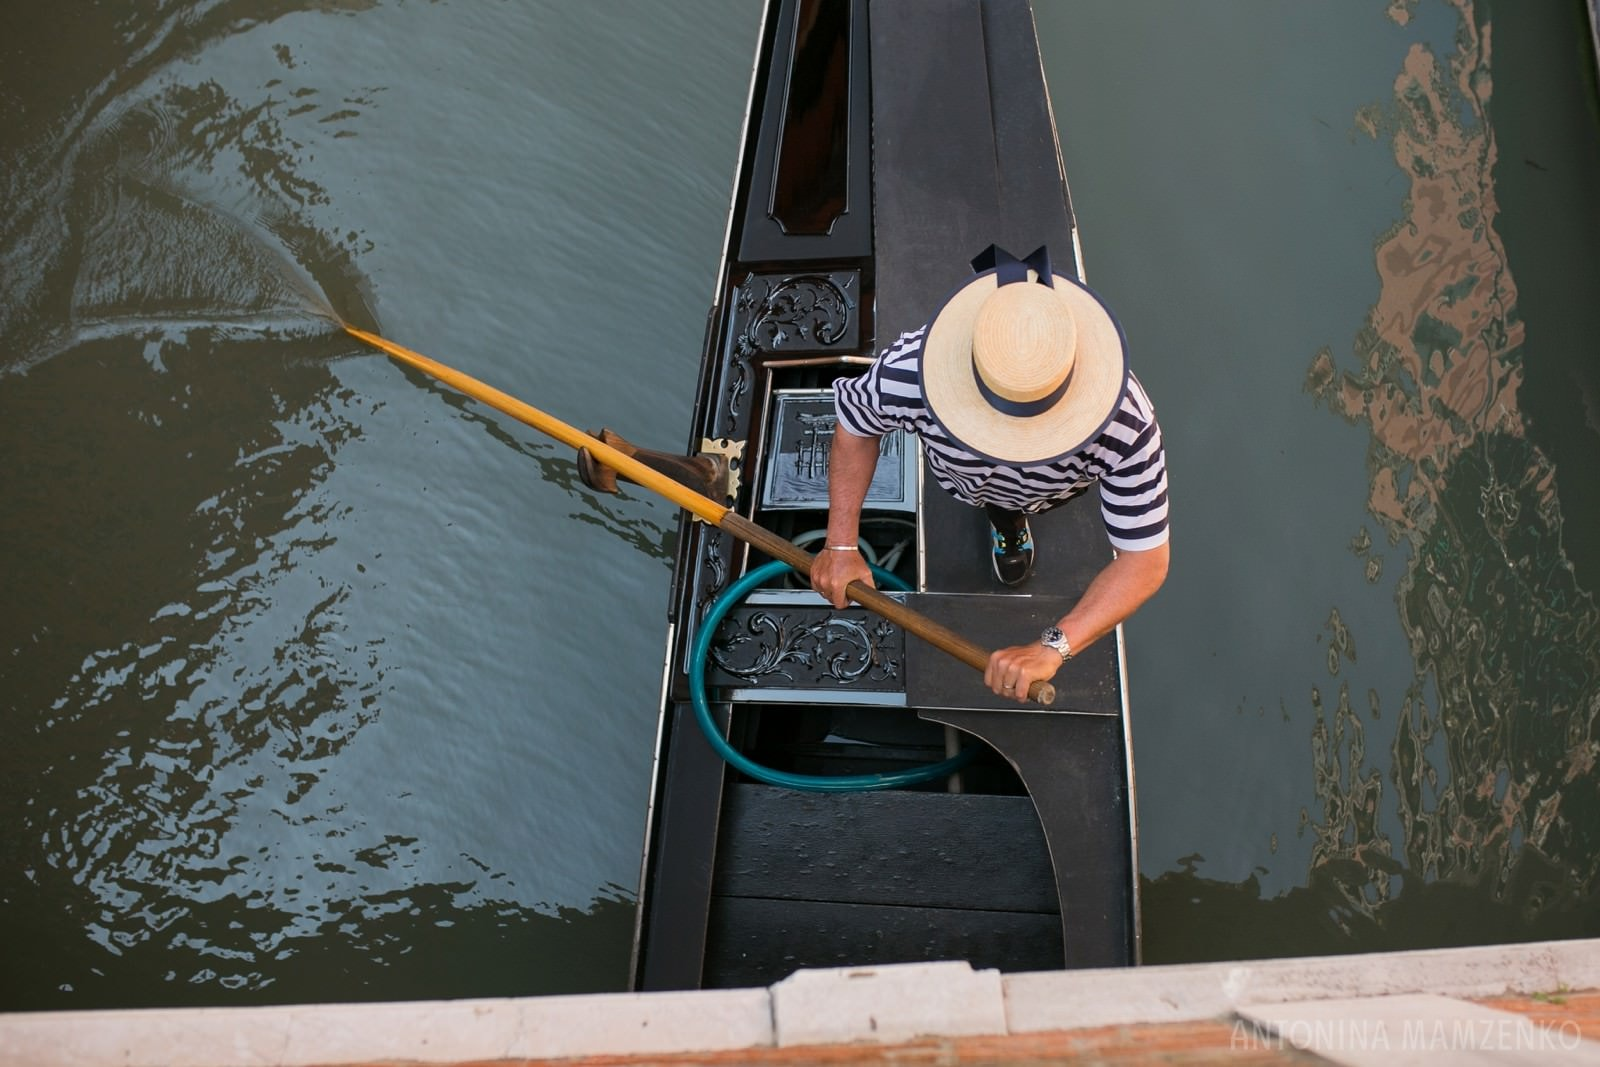 gondola photographed from above in Venice